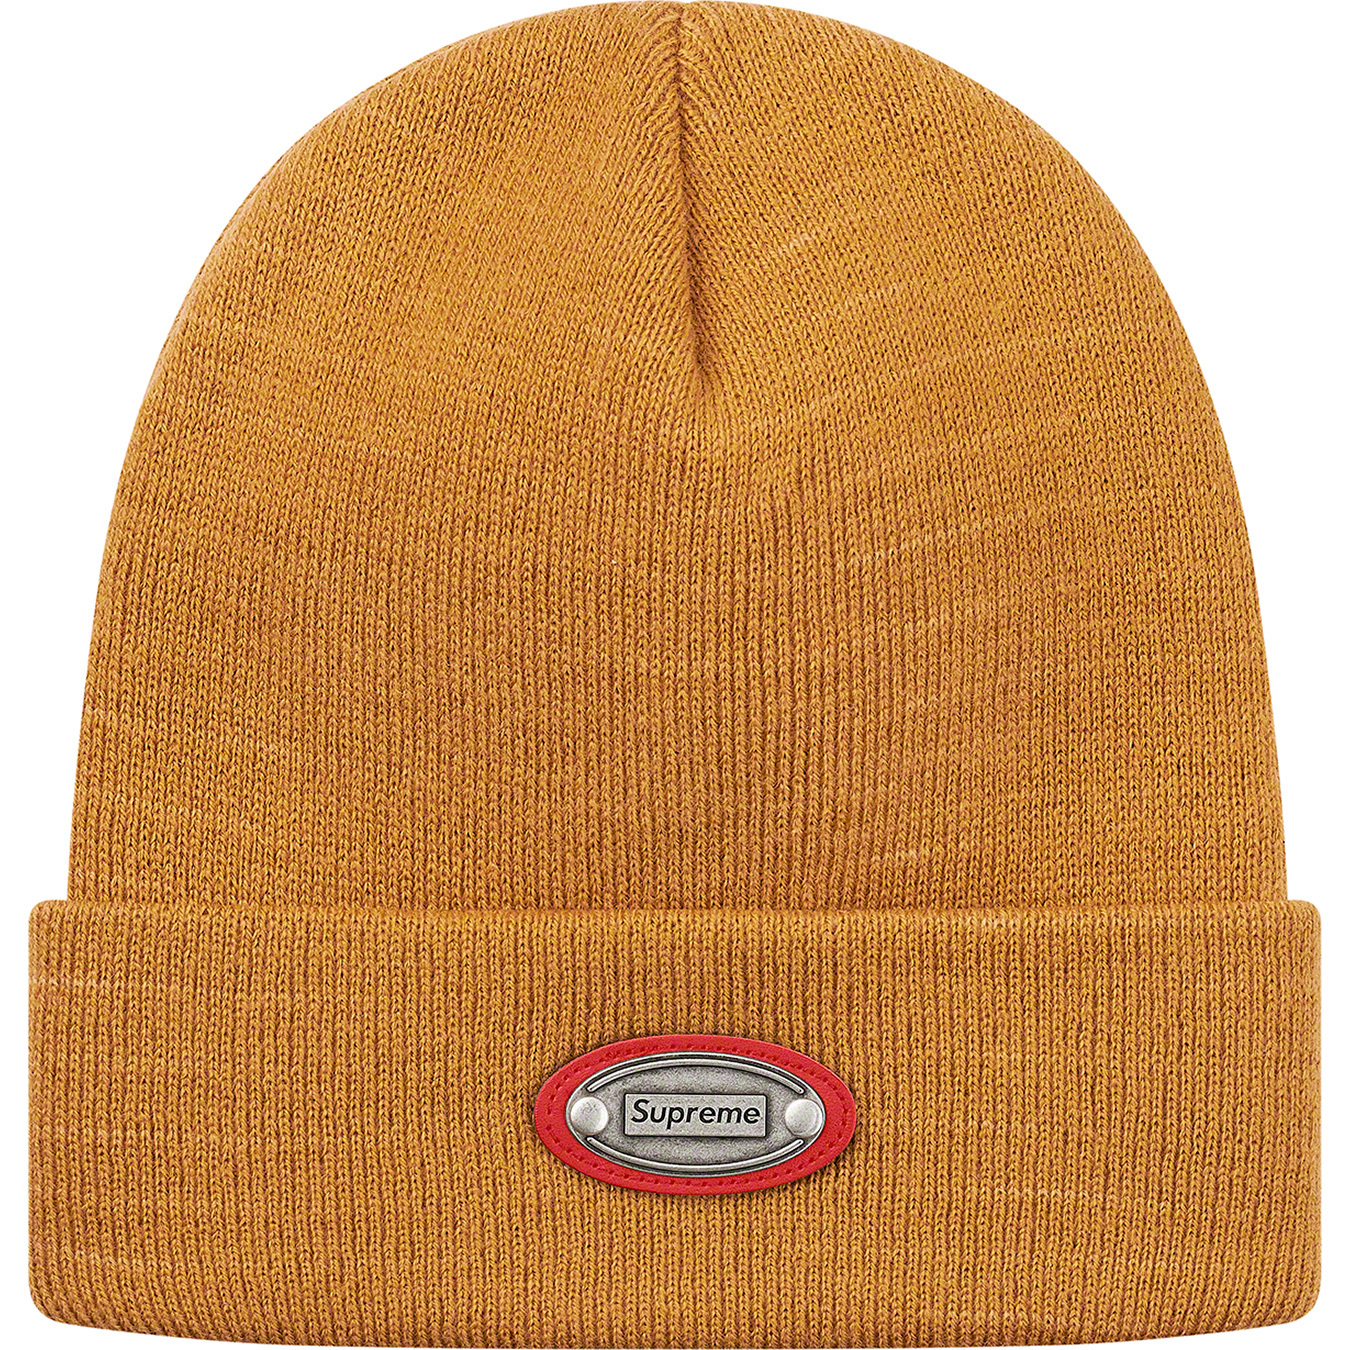 supreme-19aw-19fw-fall-winter-metal-plate-beanie